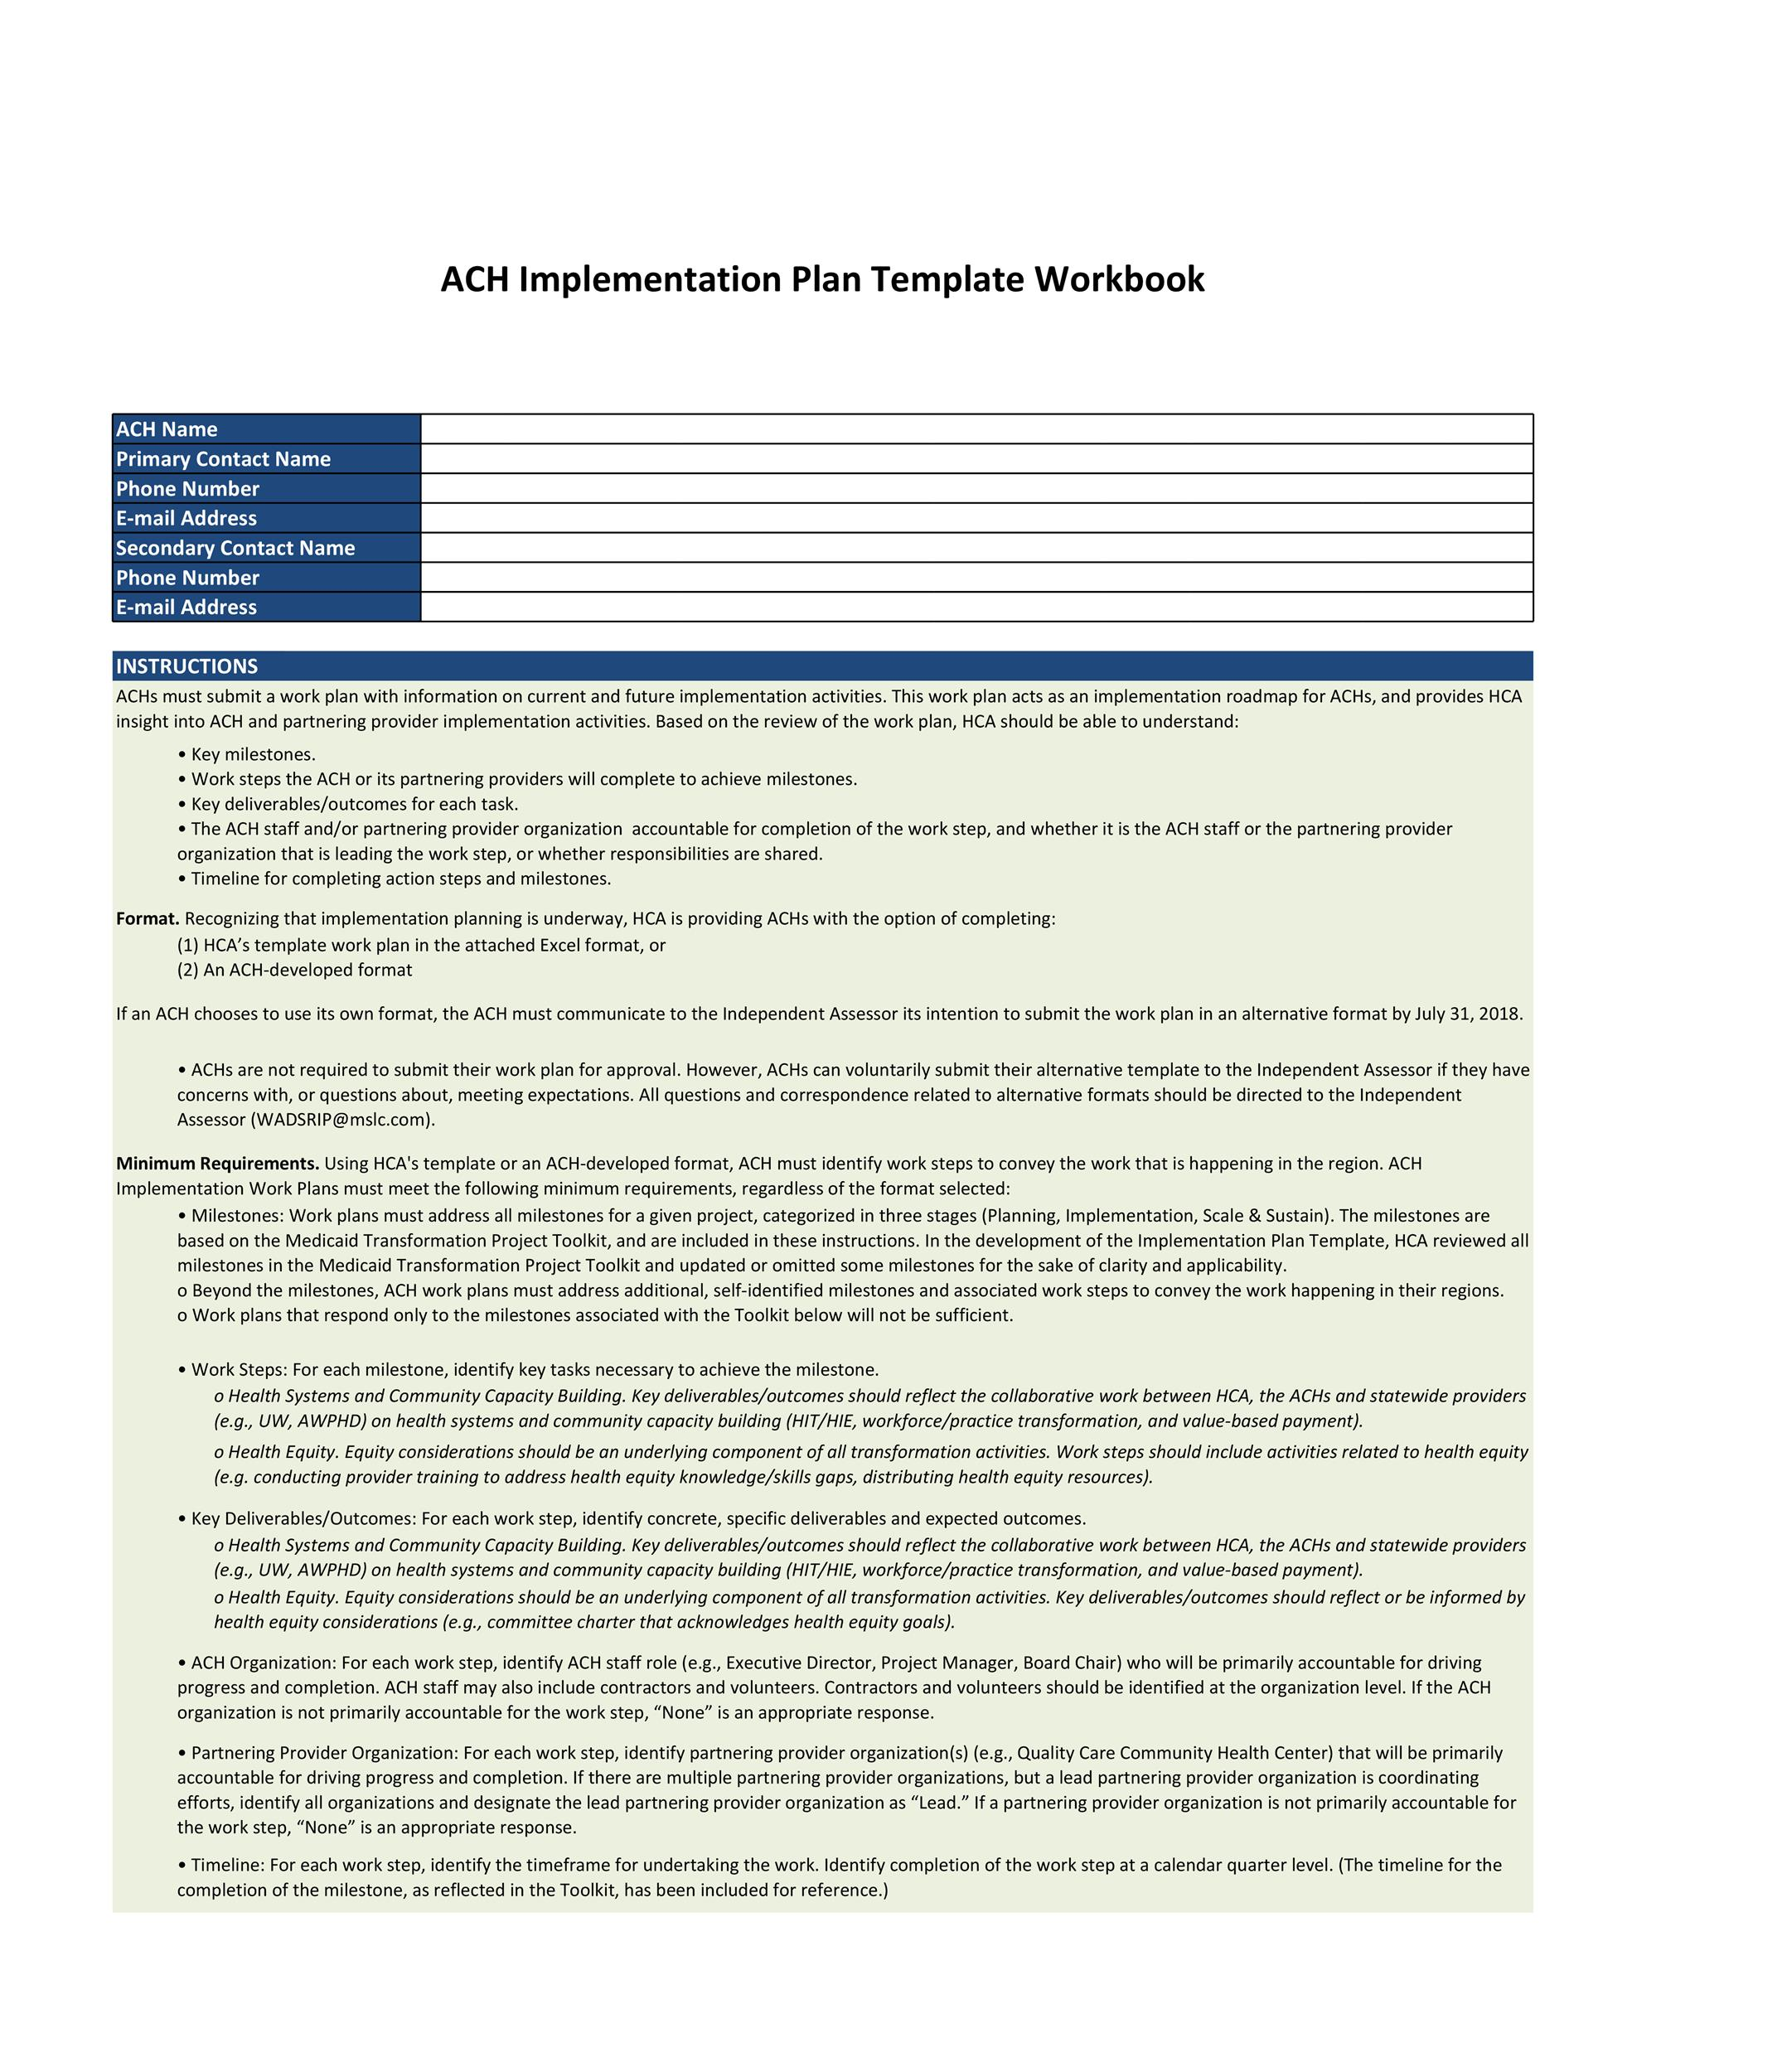 43 Step-by-Step Implementation Plan Templates ᐅ TemplateLab